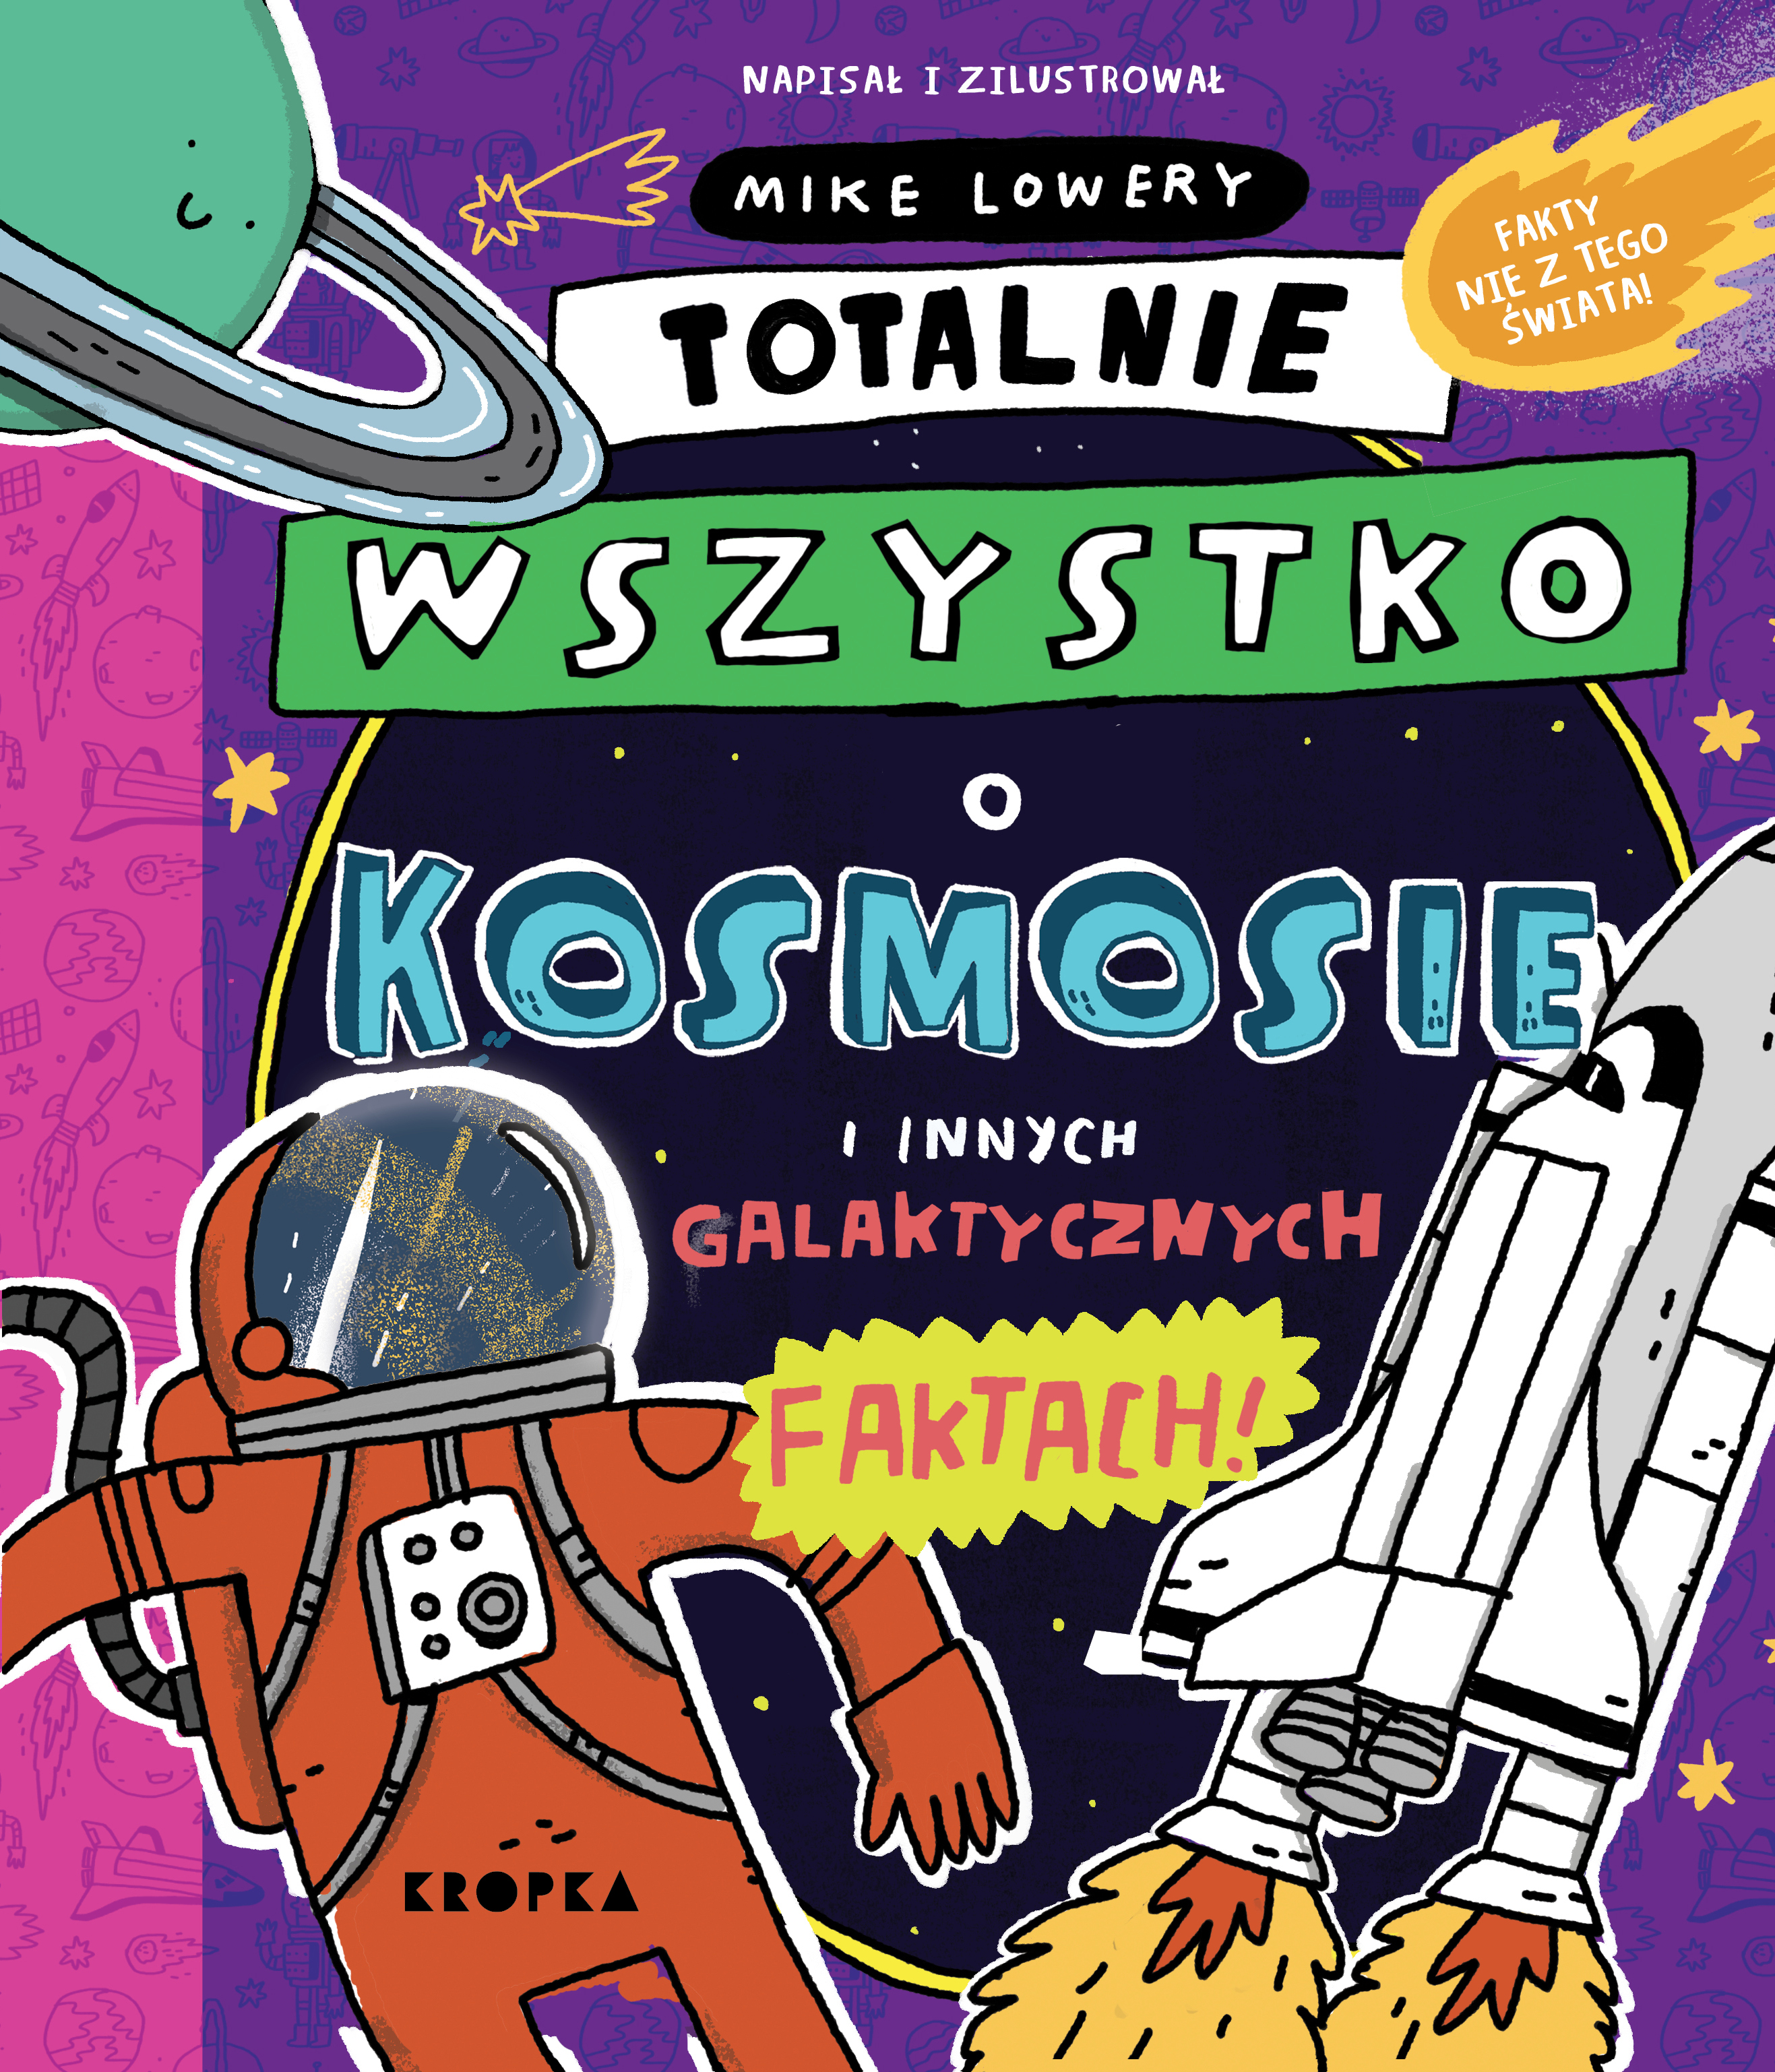 SPACE_cover_pl.jpg